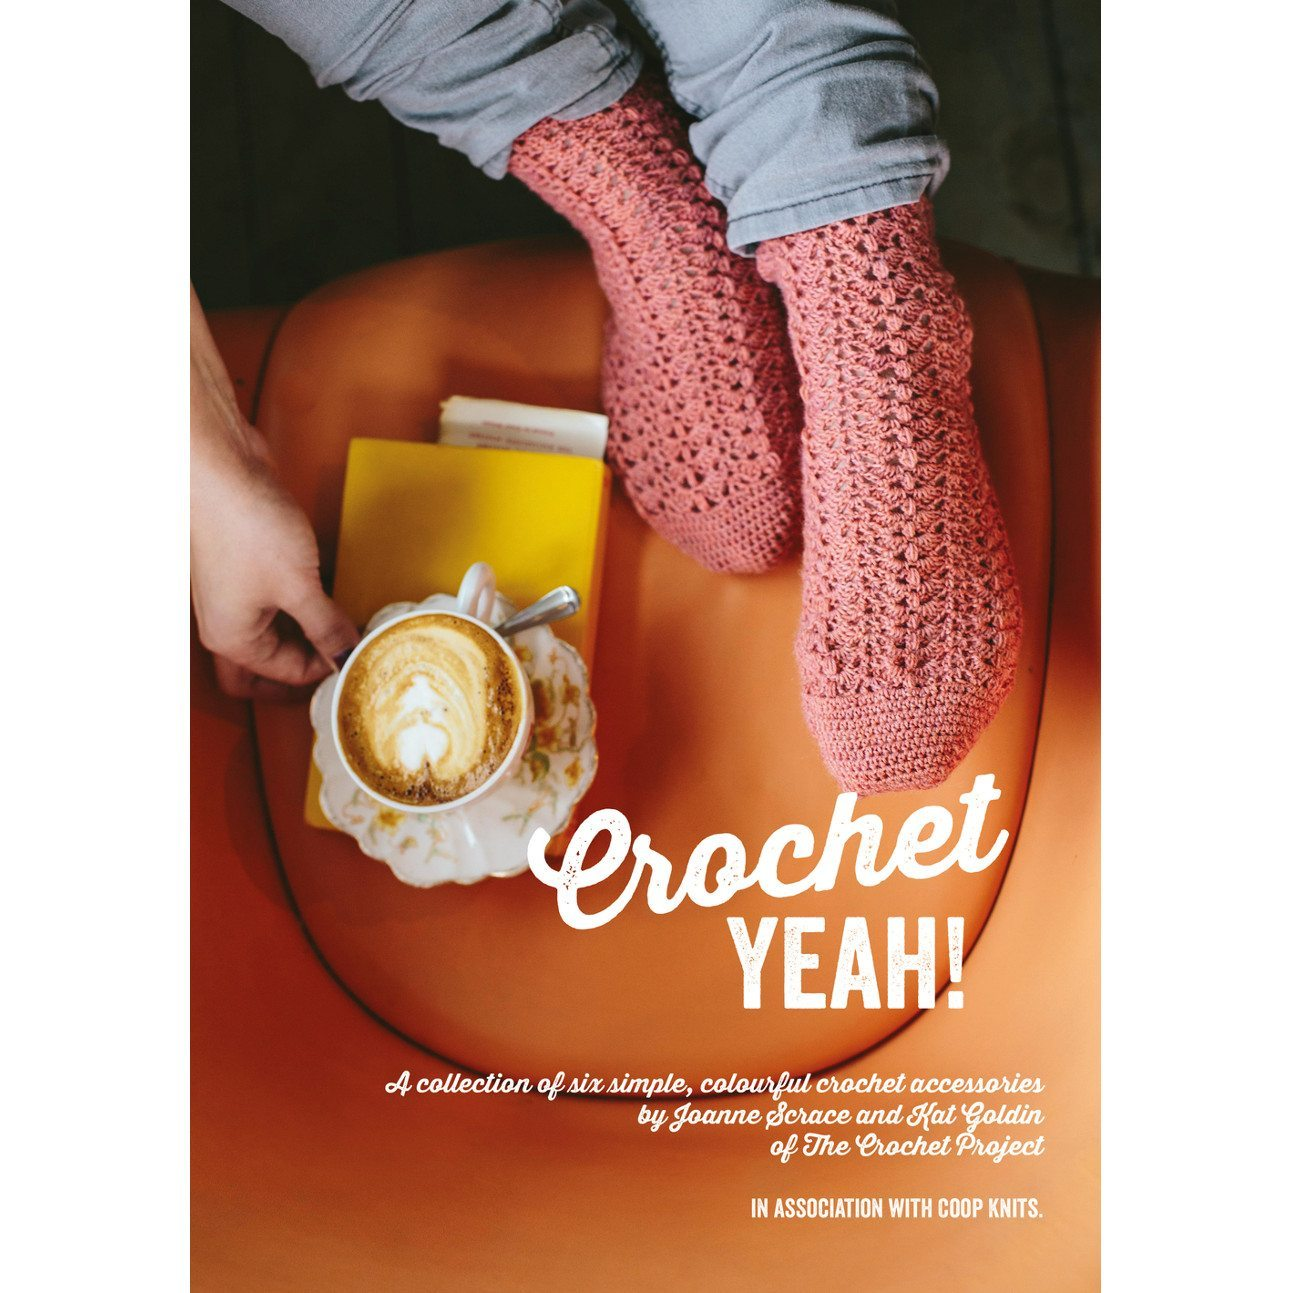 Crochet Yeah!, Crochet, Accessories, Joanne Scrace. Kat Goldin, The Crochet Project, Coop Knits